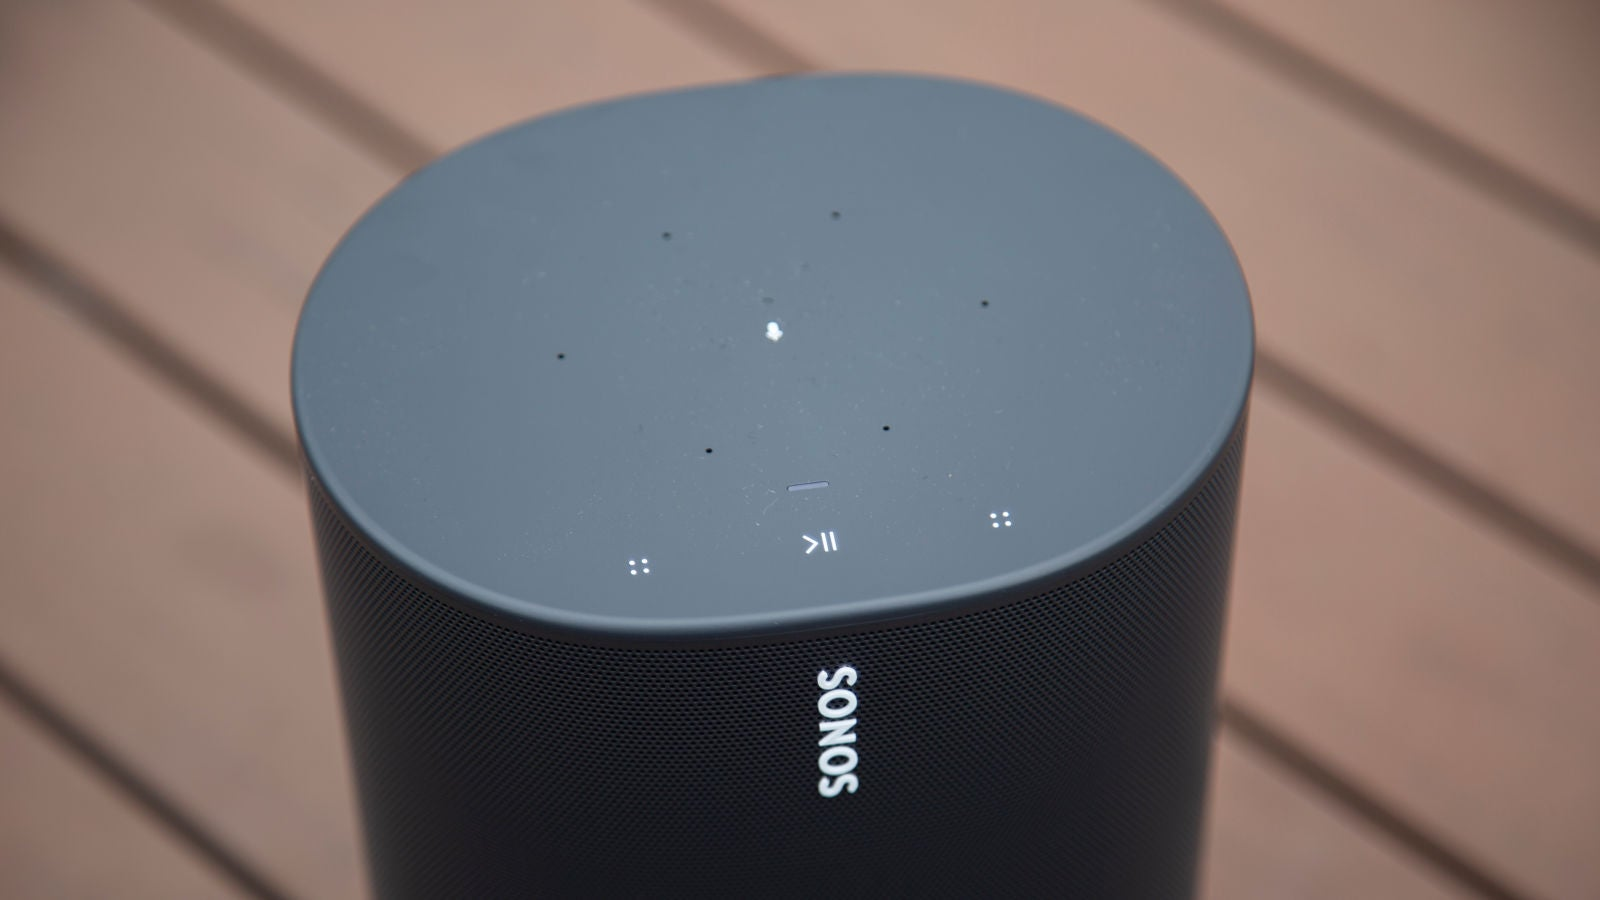 Sonos Doesn't Understand How Recycling Works